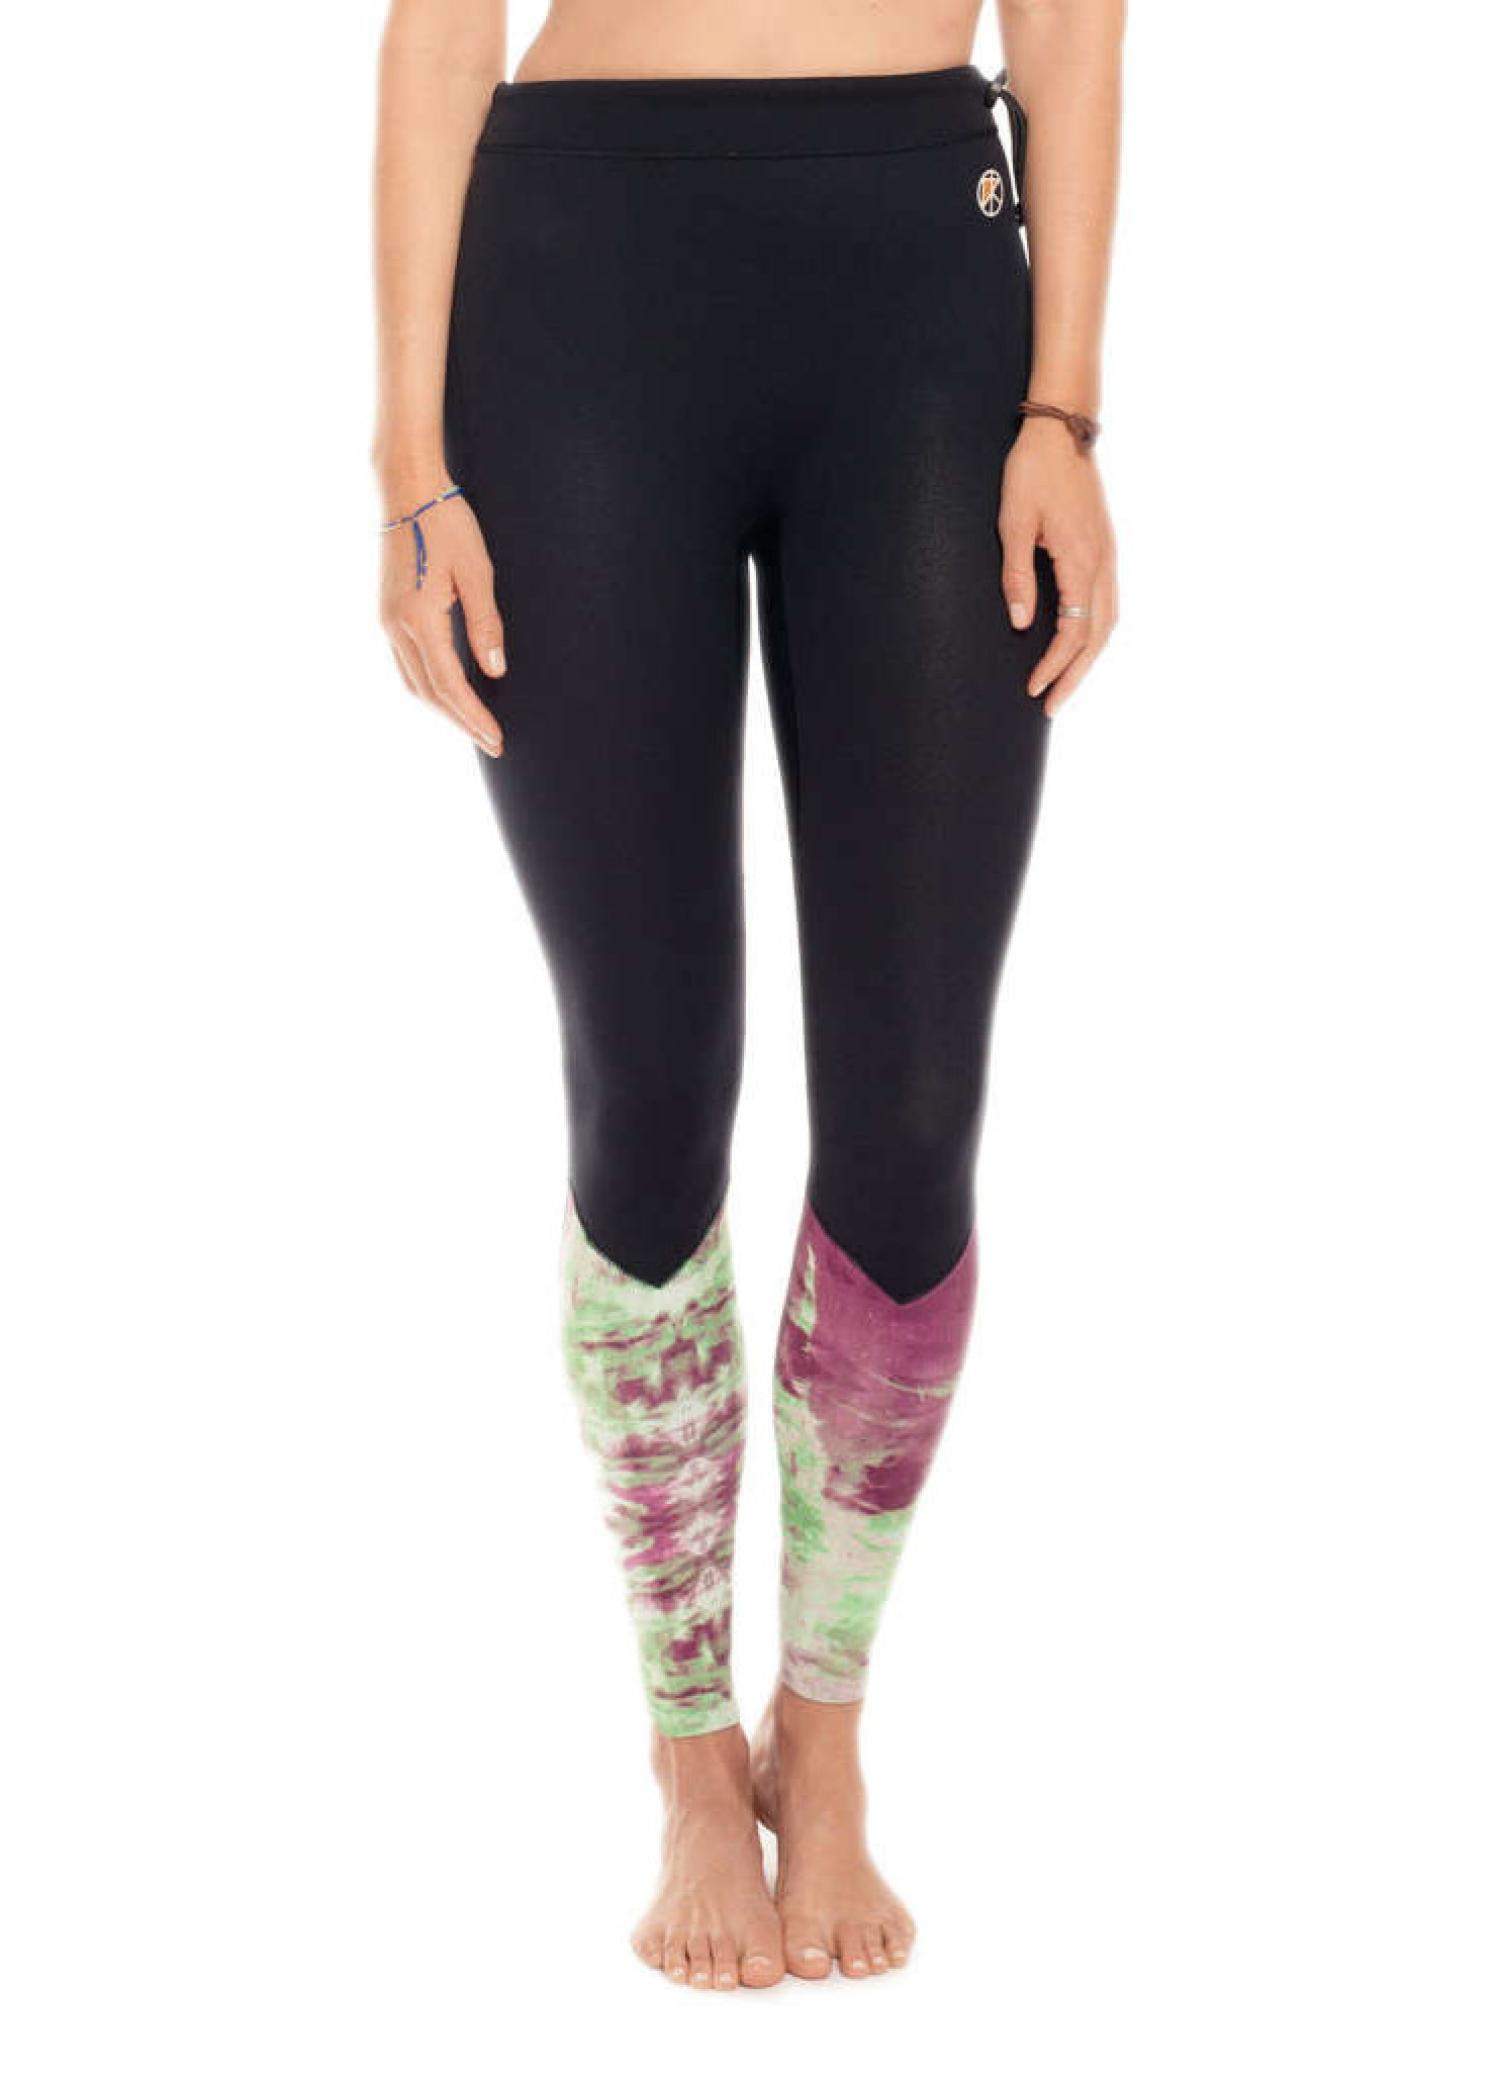 KASSIA + SURF  2MM REVERSIBLE SURF LEGGINGS Purple Green